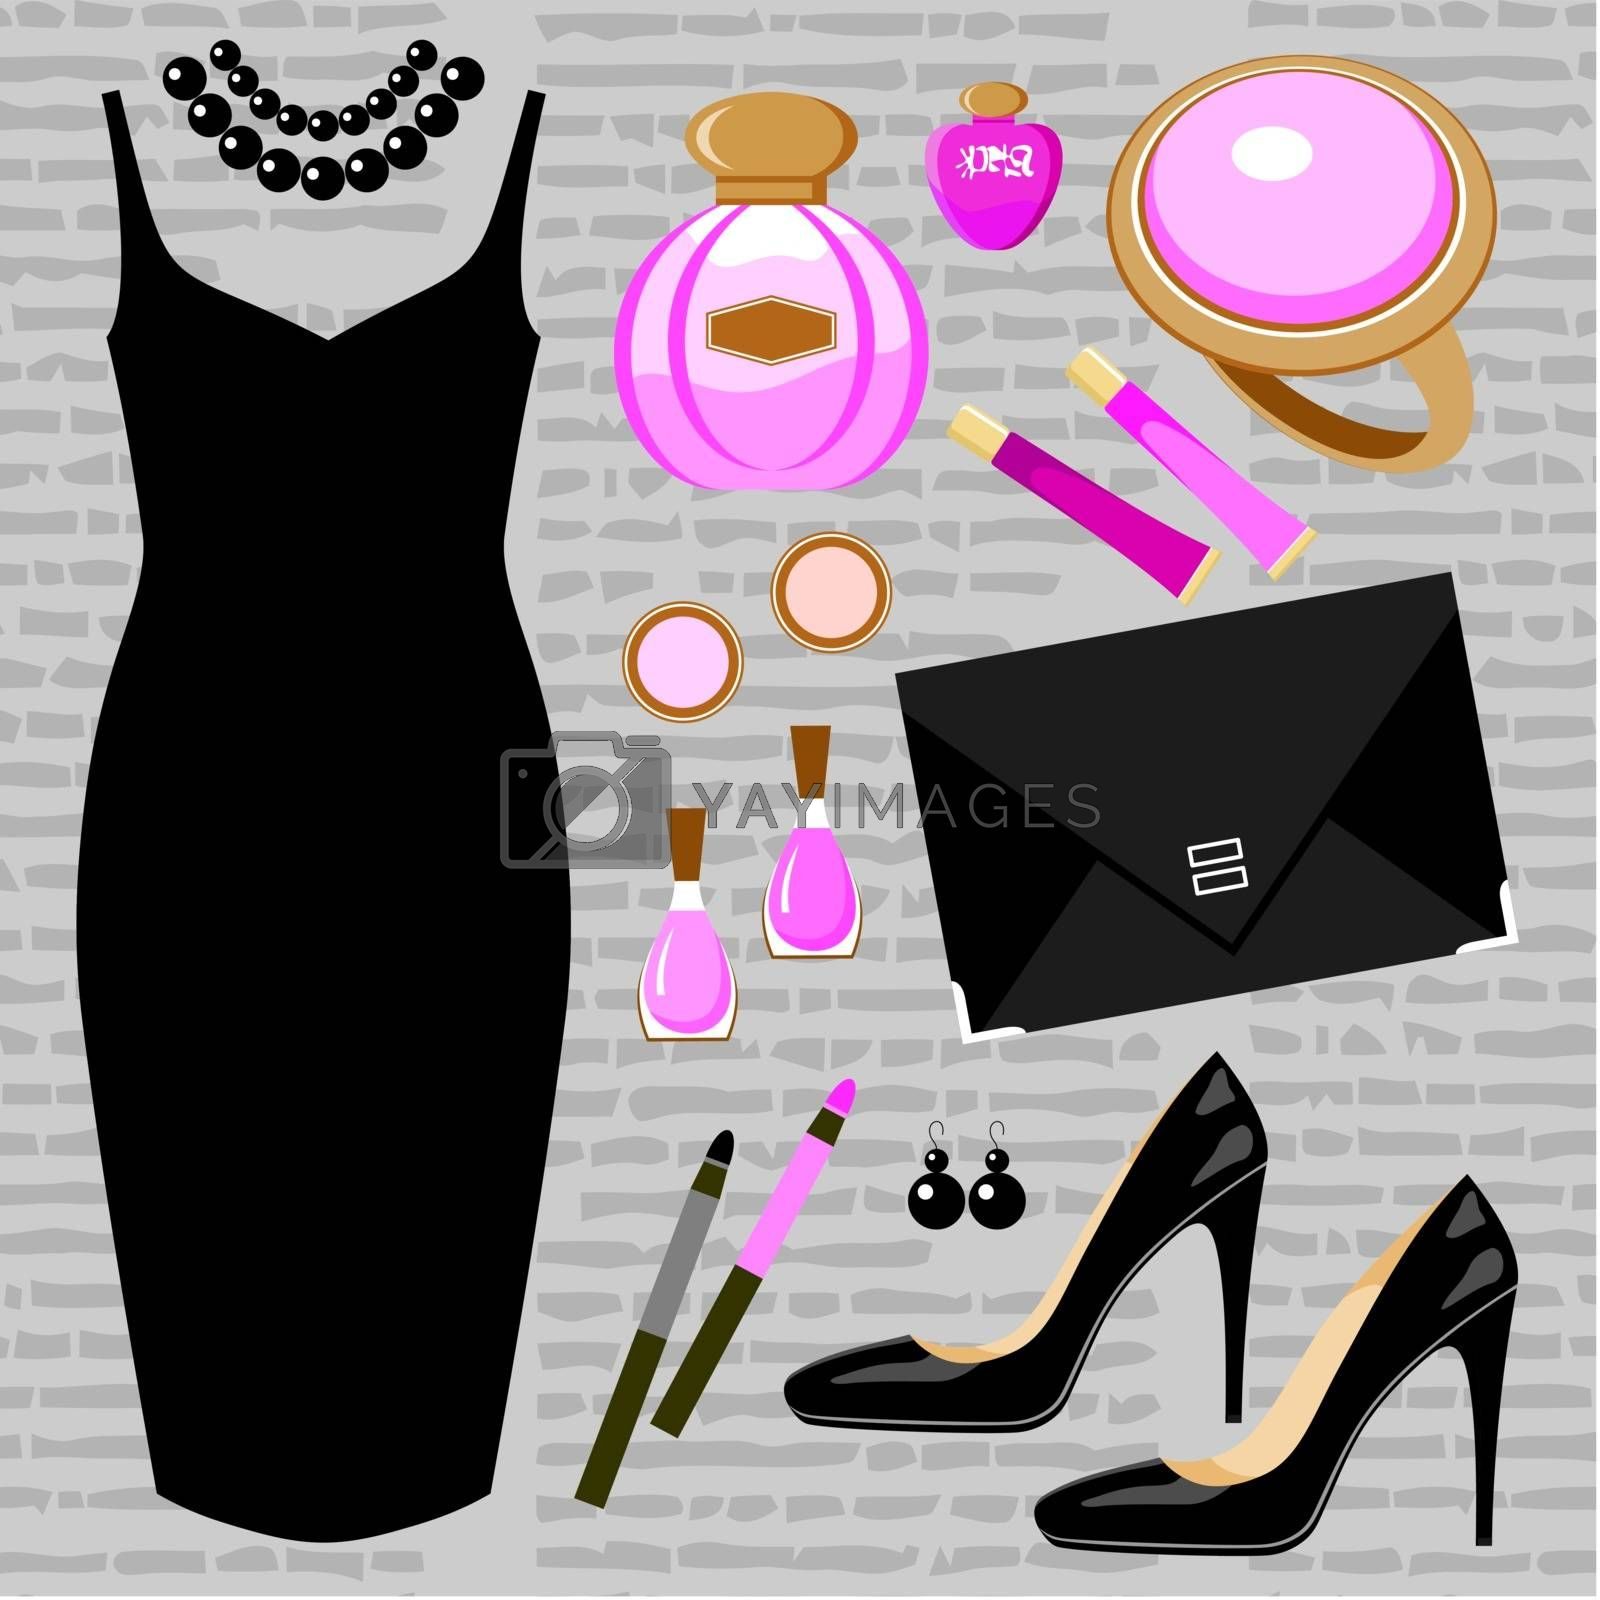 Fashion set with a cocktail dress by GurZZZa